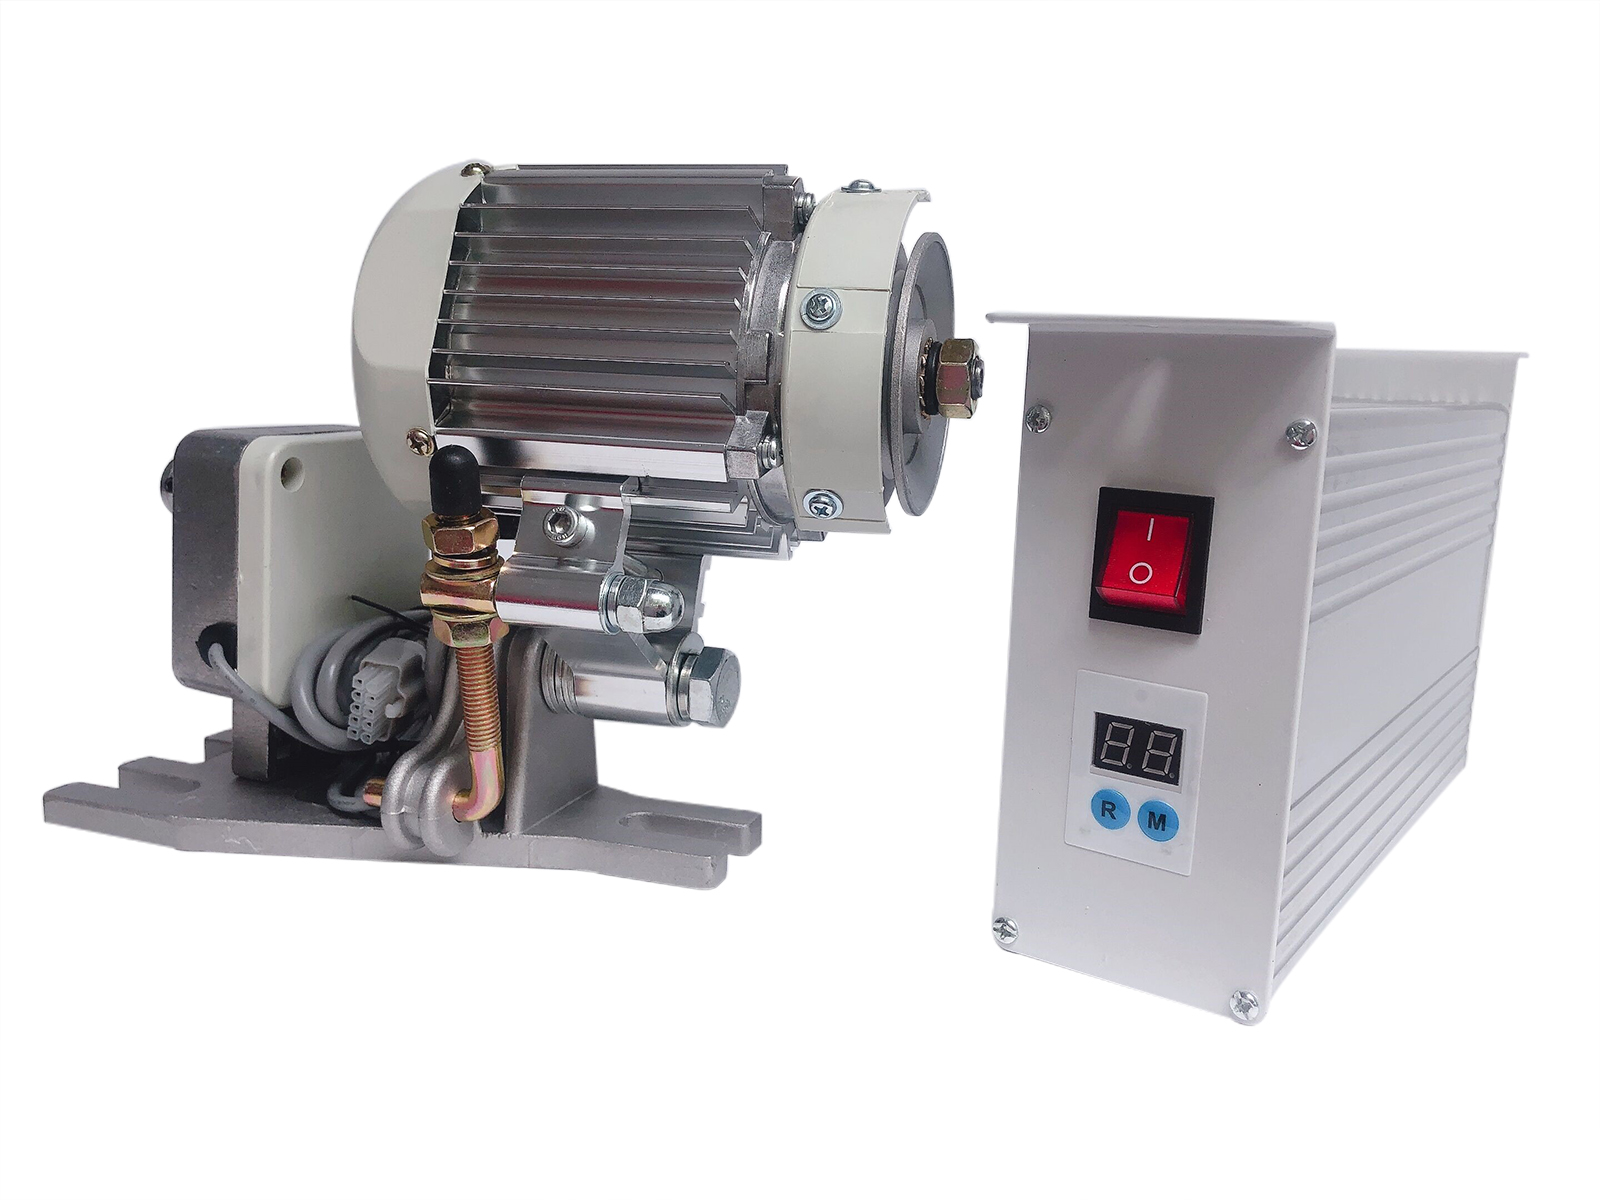 FL-WD-750T BRUSHLESS MOTOR FOR INDUSTRIAL SEWING MACHINES